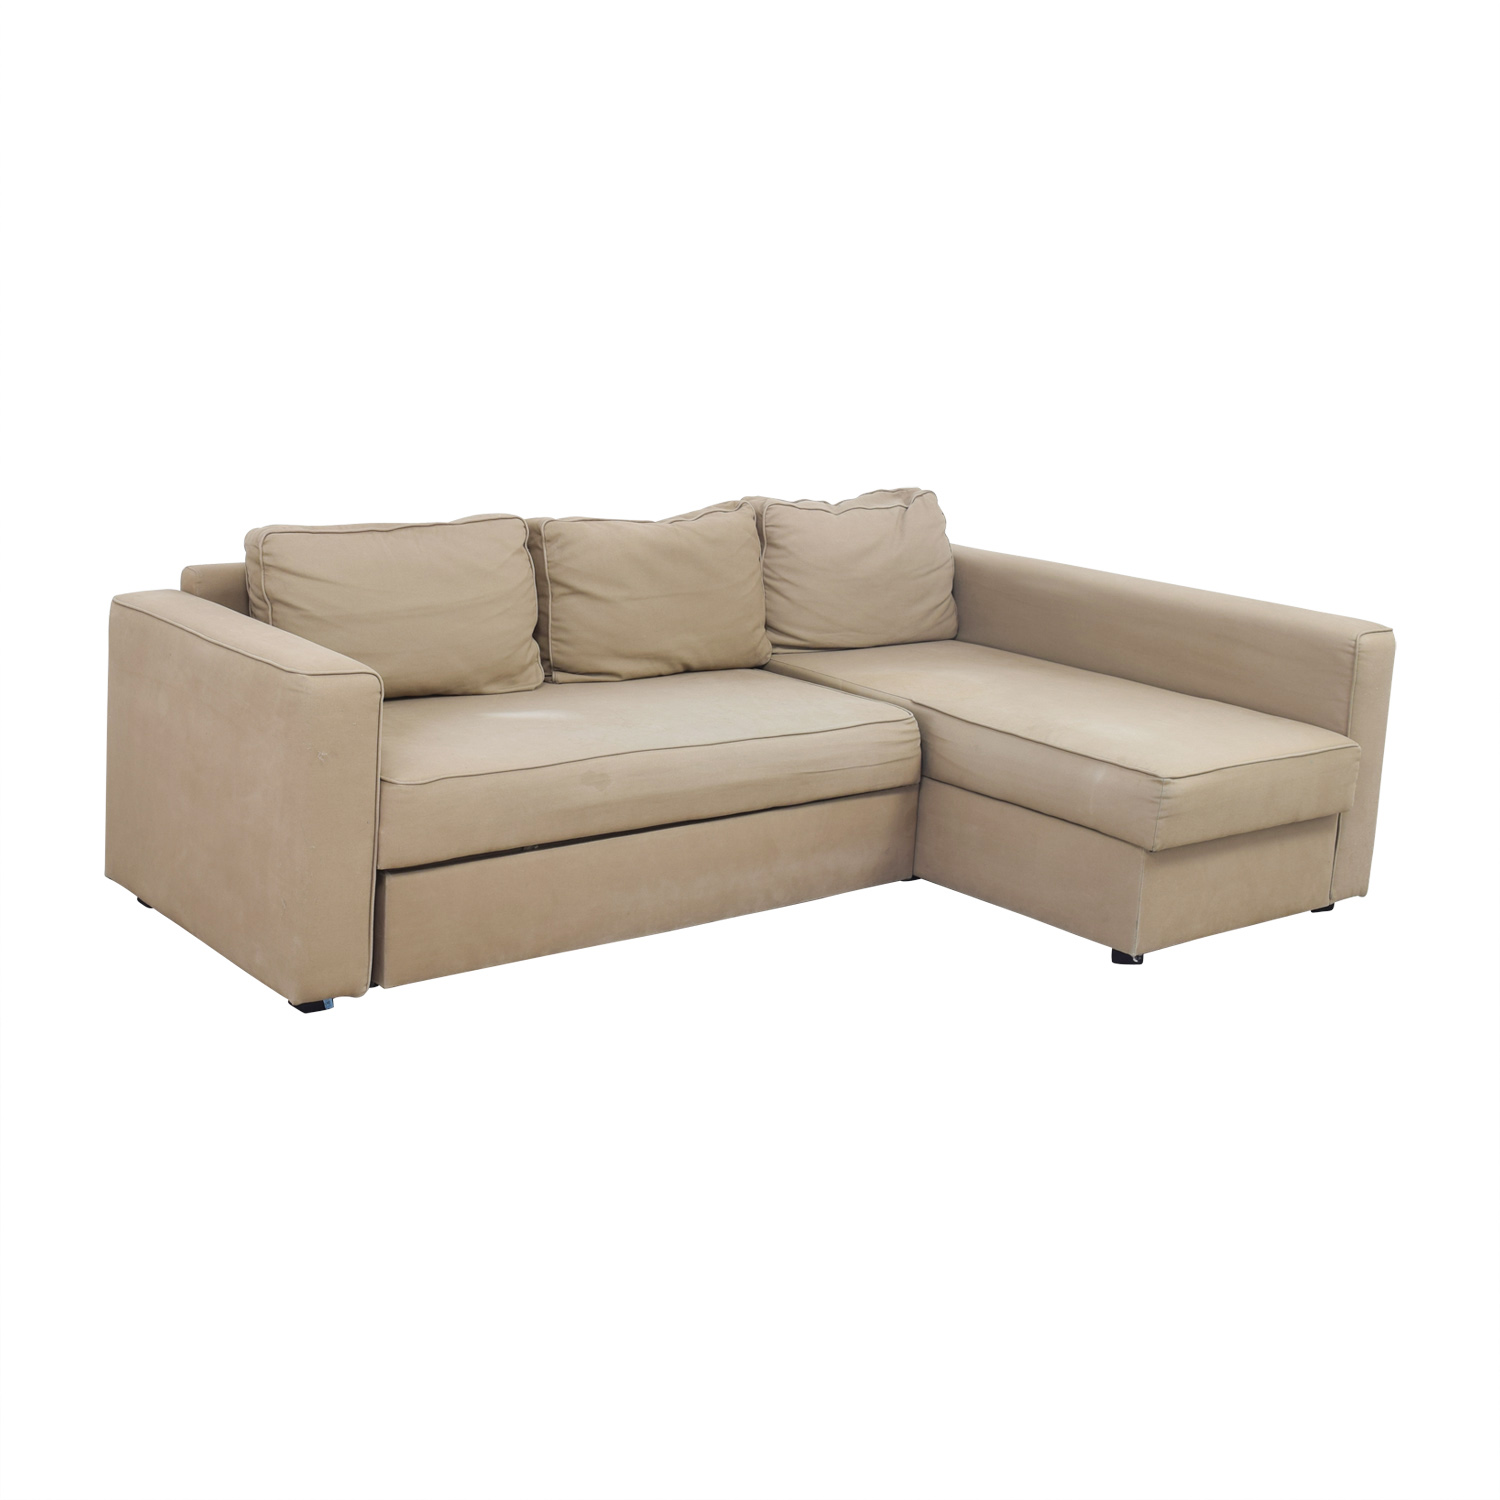 ... Shop IKEA IKEA Manstad Sectional Sofa Bed With Storage Online ...